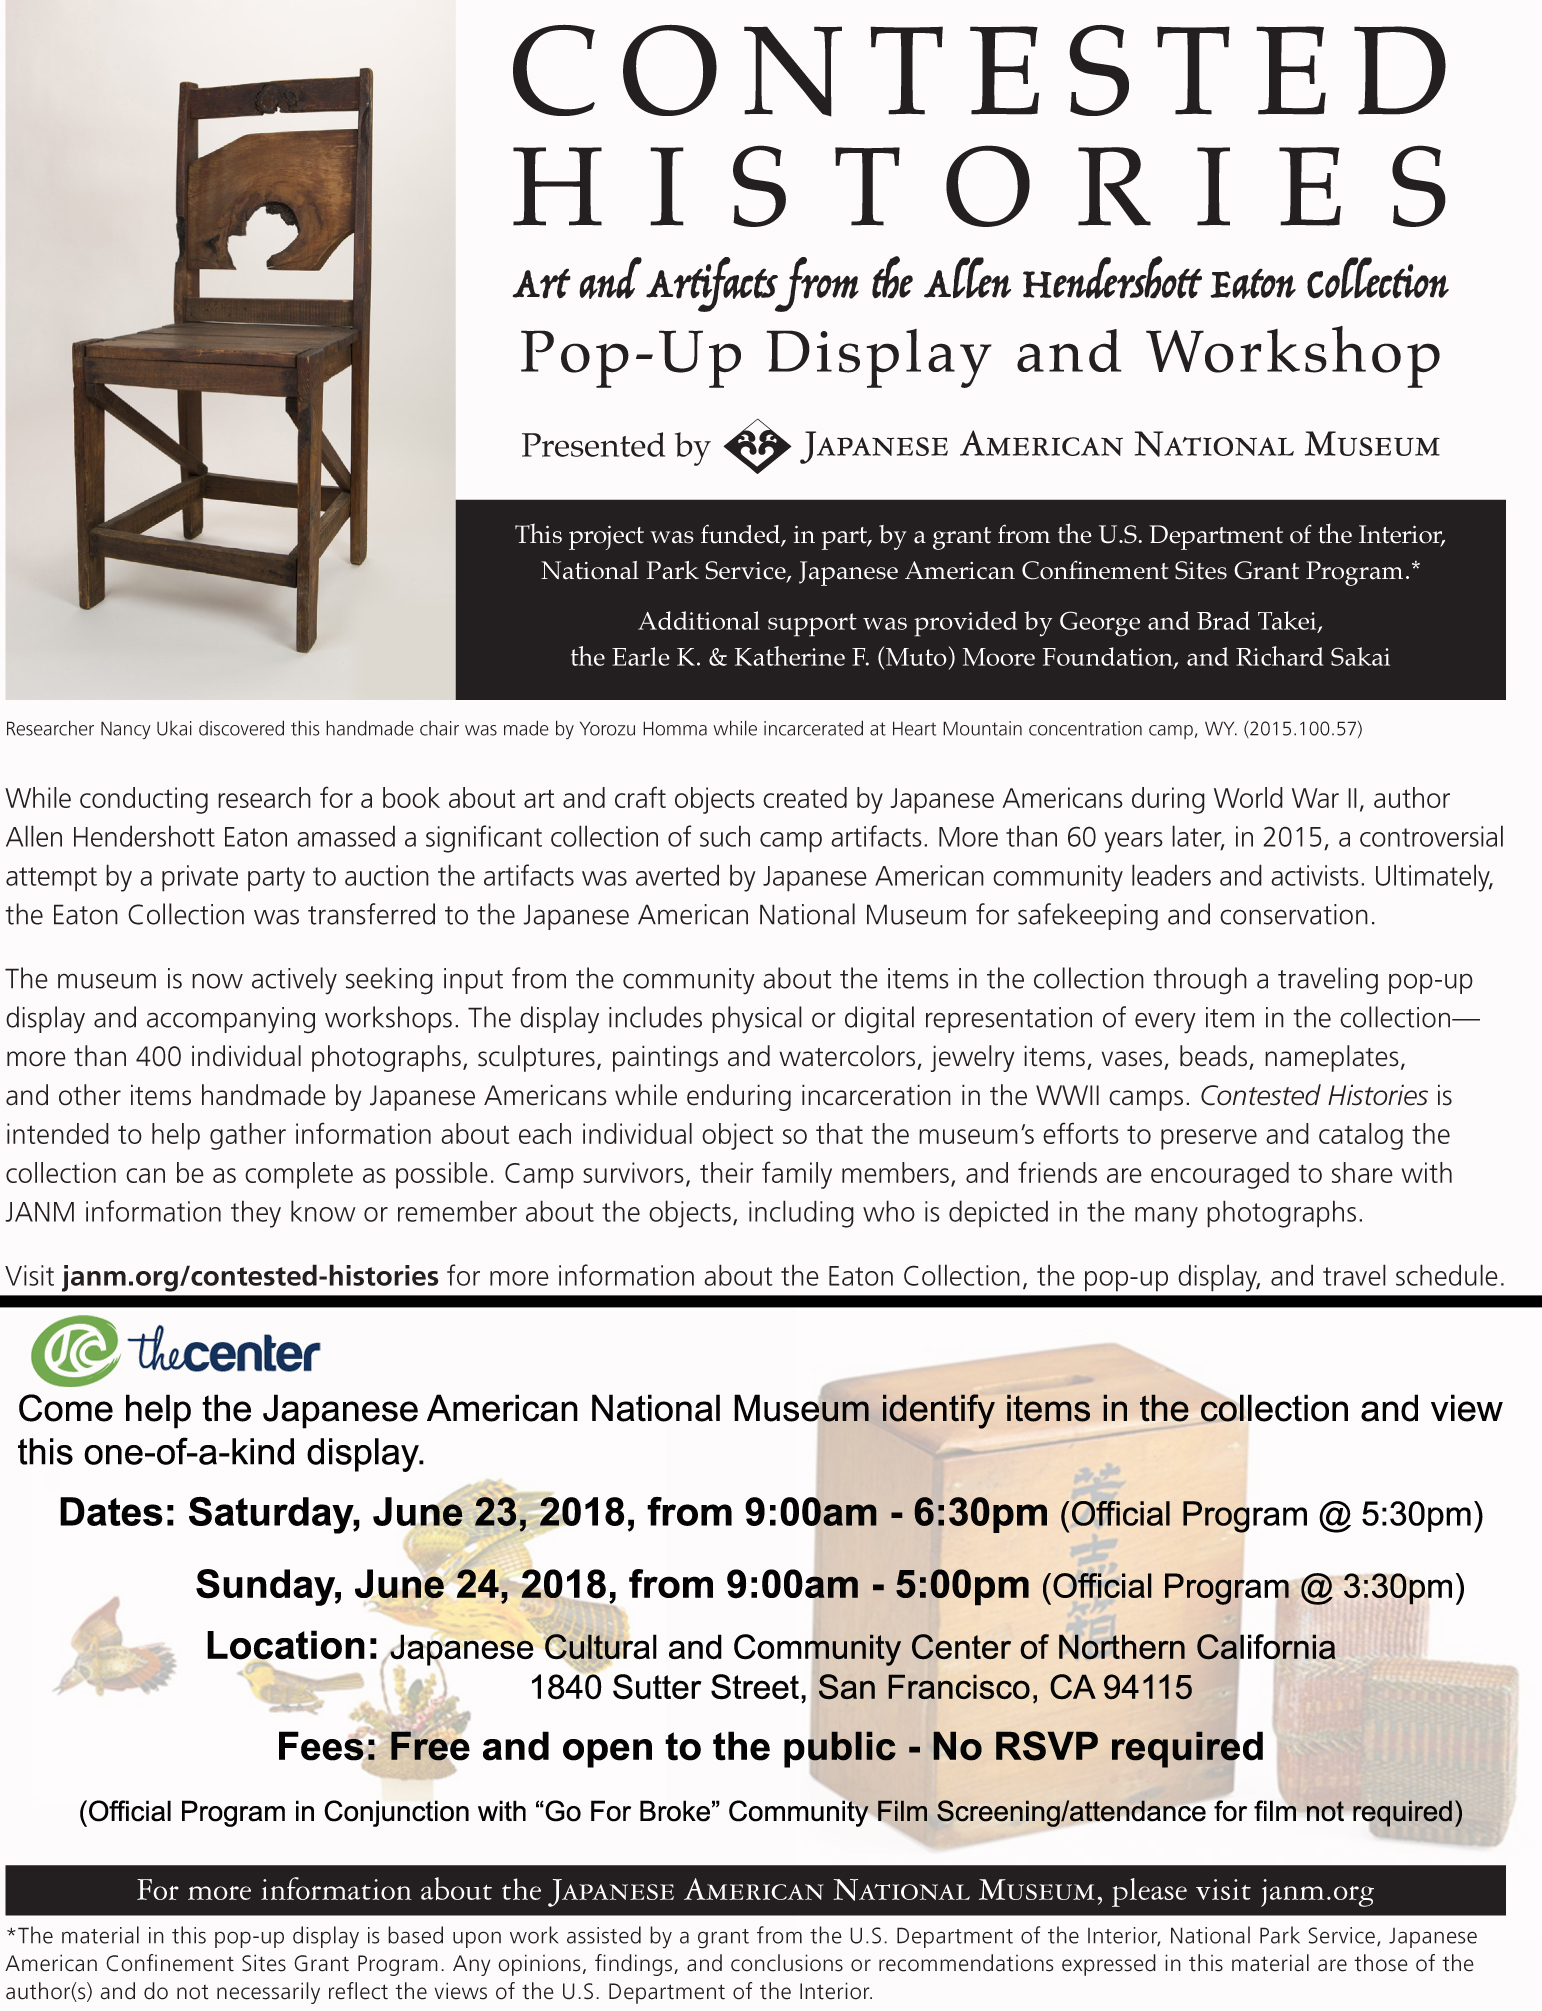 Contested Histories Pop-Up Display and Workshop @ Japanese Cultural and Community Center of Northern California | San Francisco | California | United States